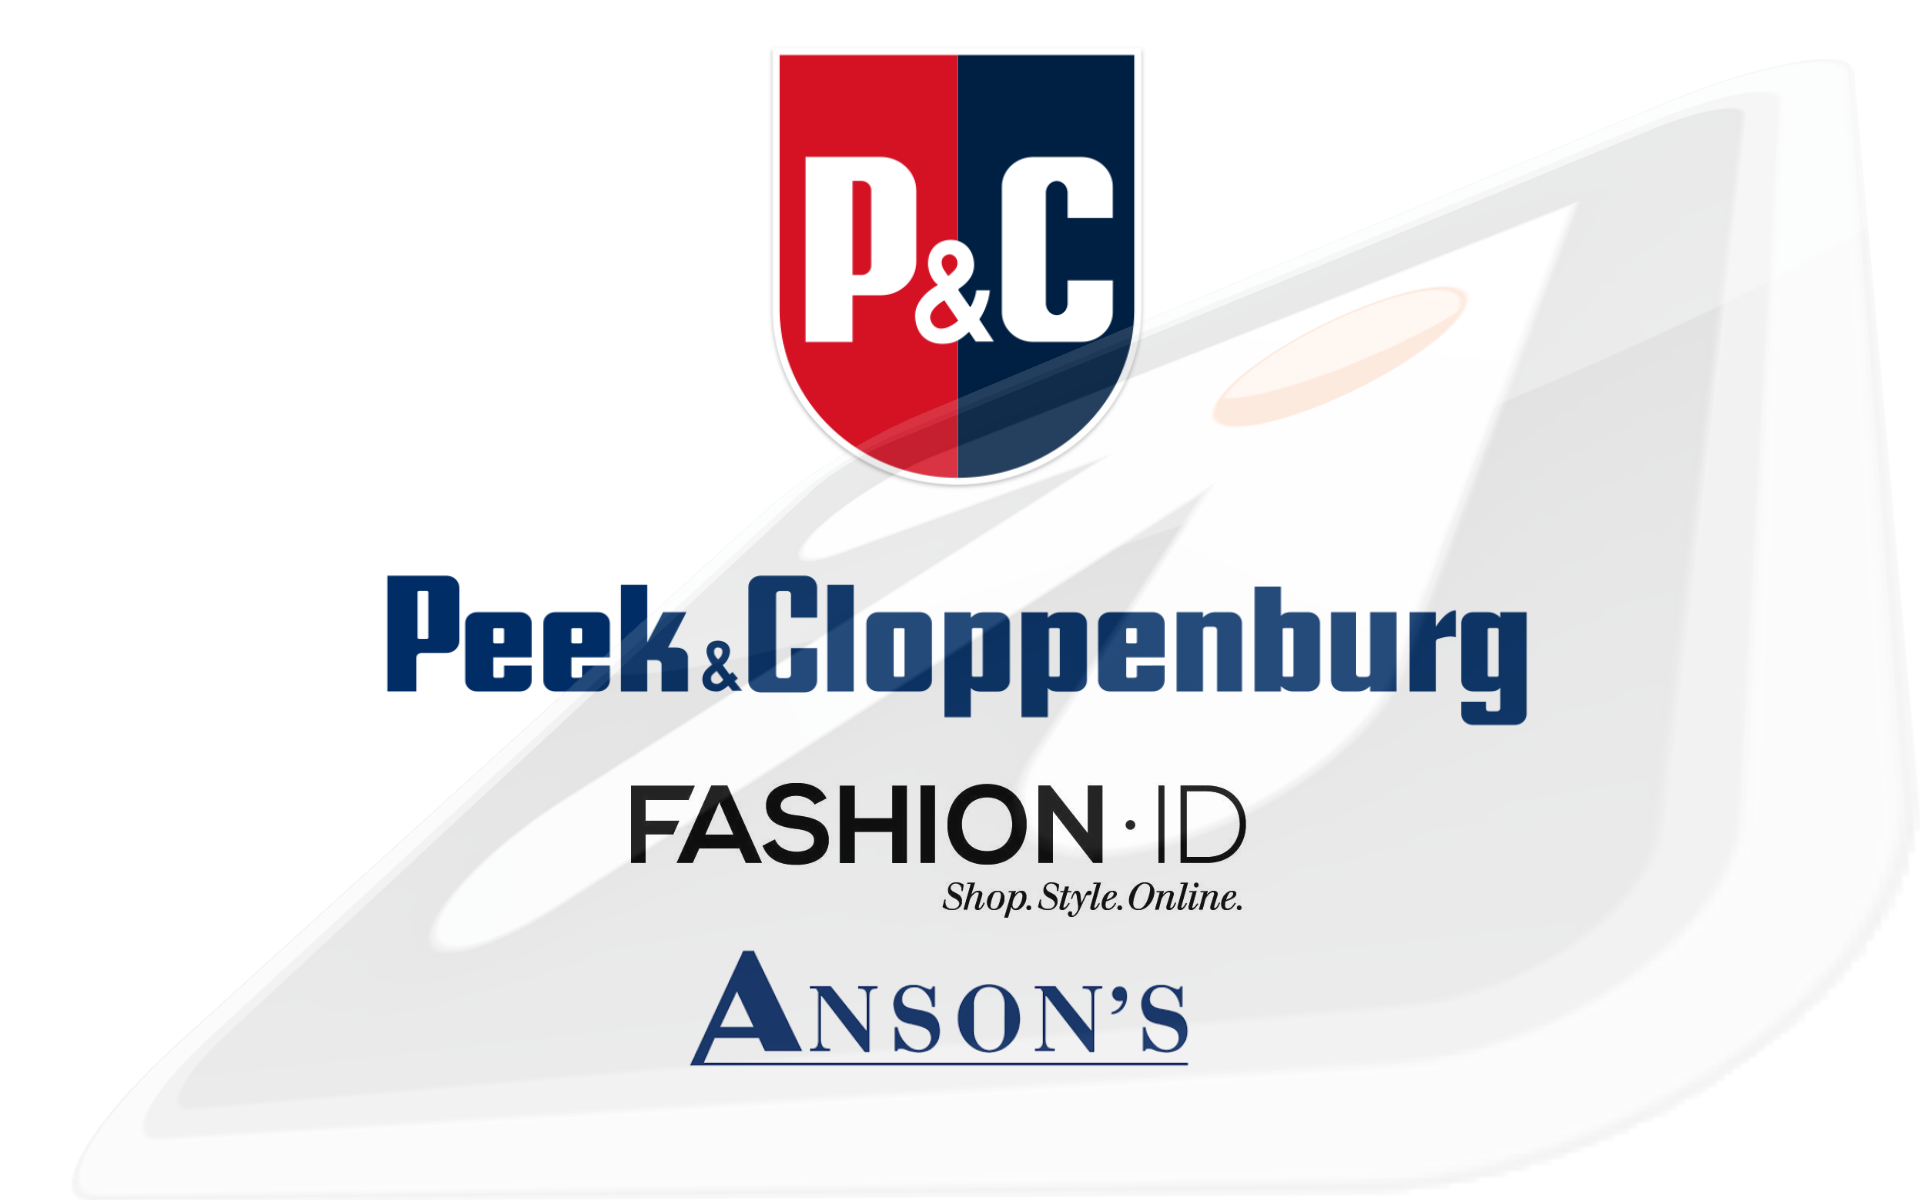 P&C Peek & Cloppenburg - FashionID - Fashion Digital - Ansons - Media & IT Maue